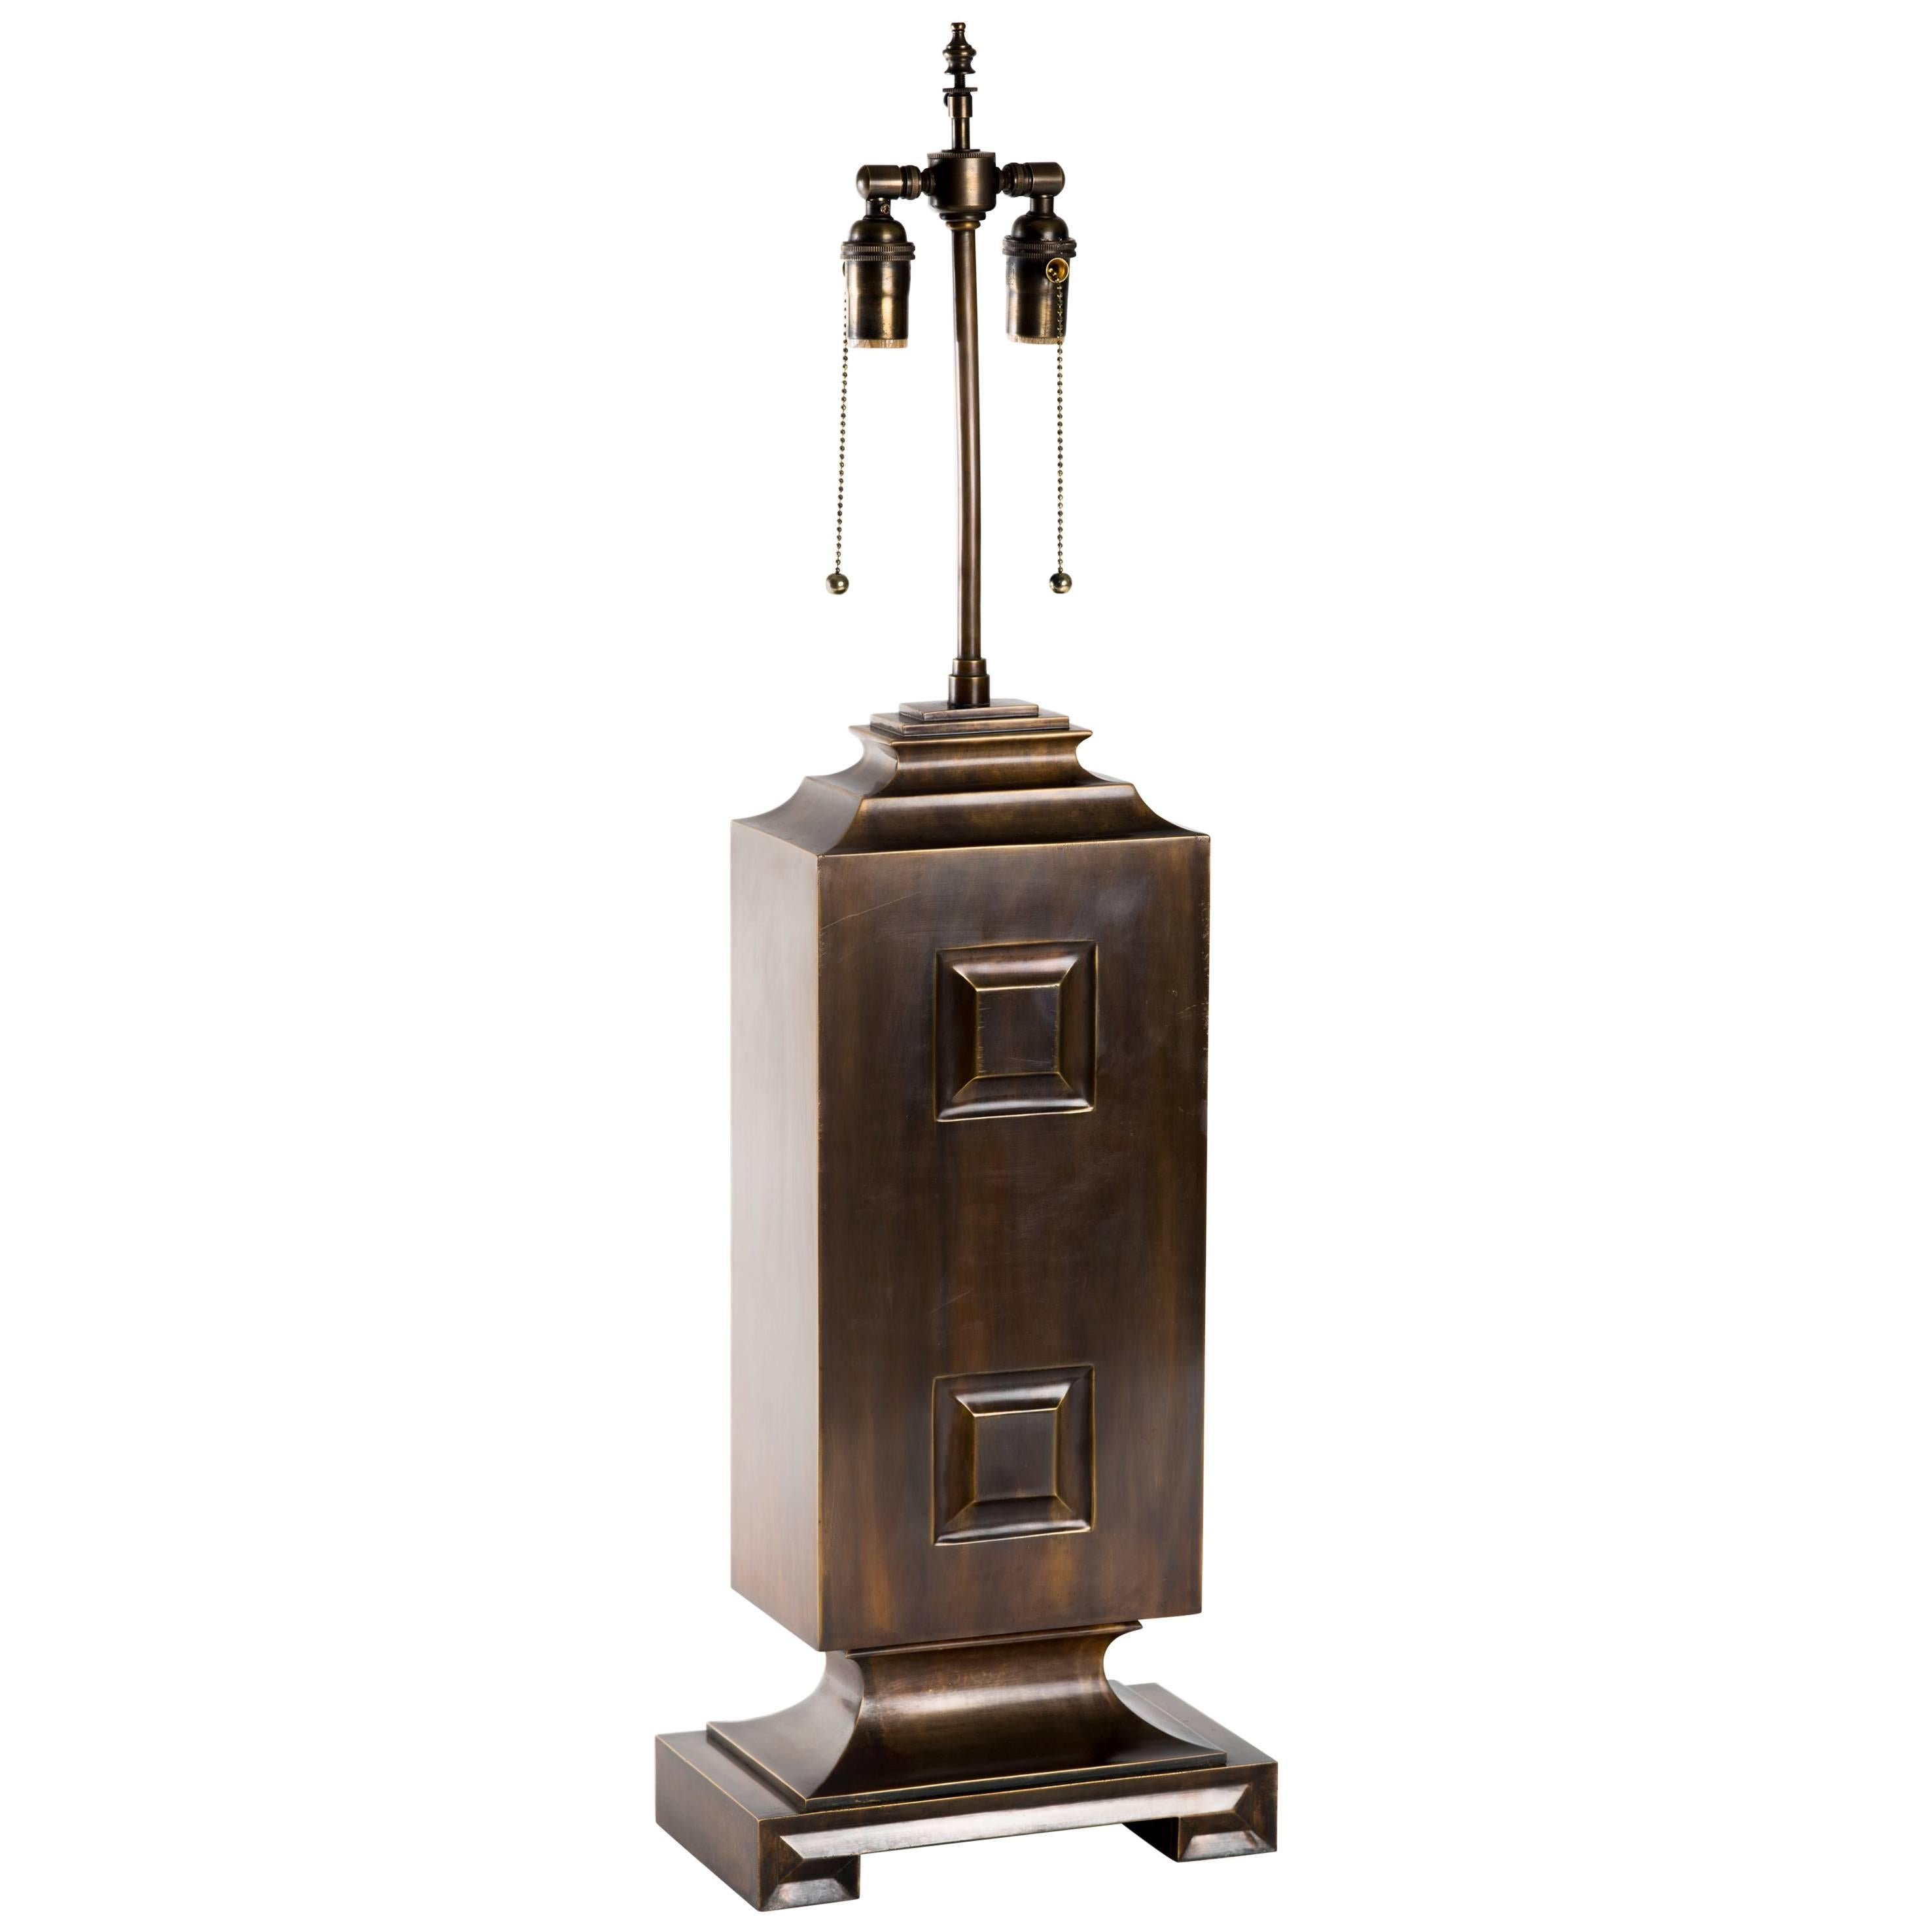 Monumental Patinated Brass Hollywood Regency Lamp